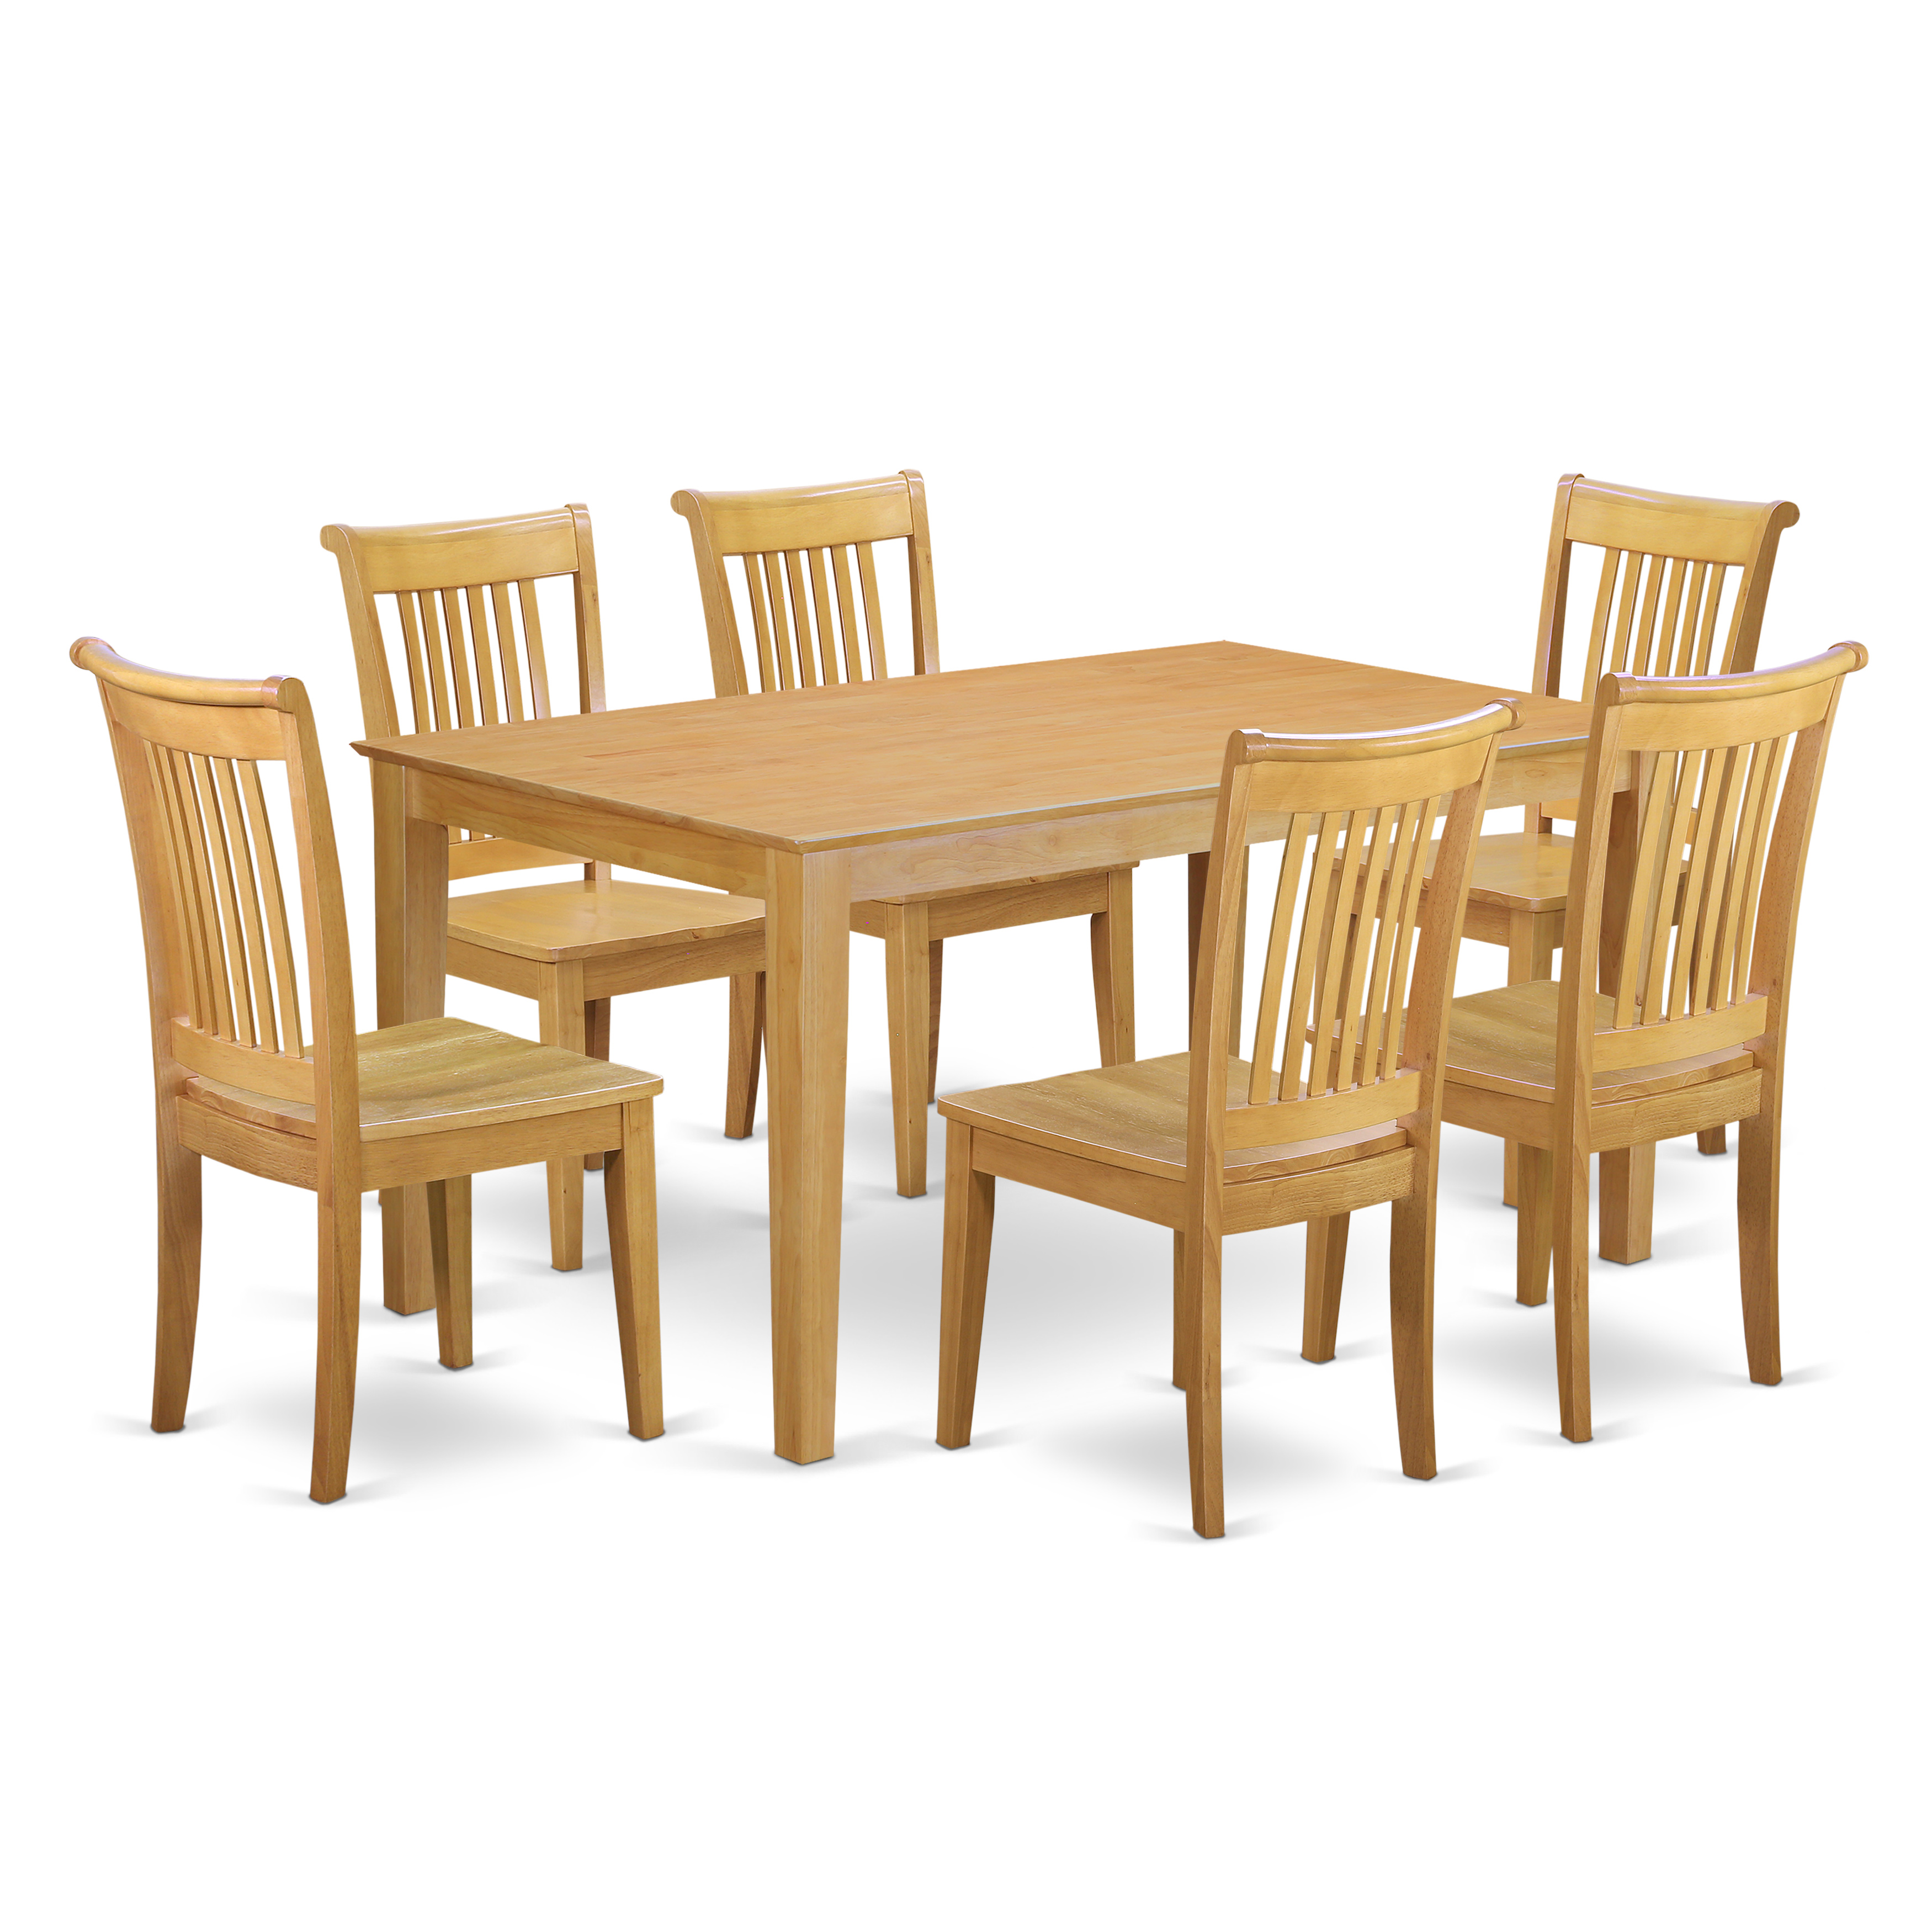 strong dining room chairs | East West Furniture CAPO7-OAK-W 7 Piece dining table set ...